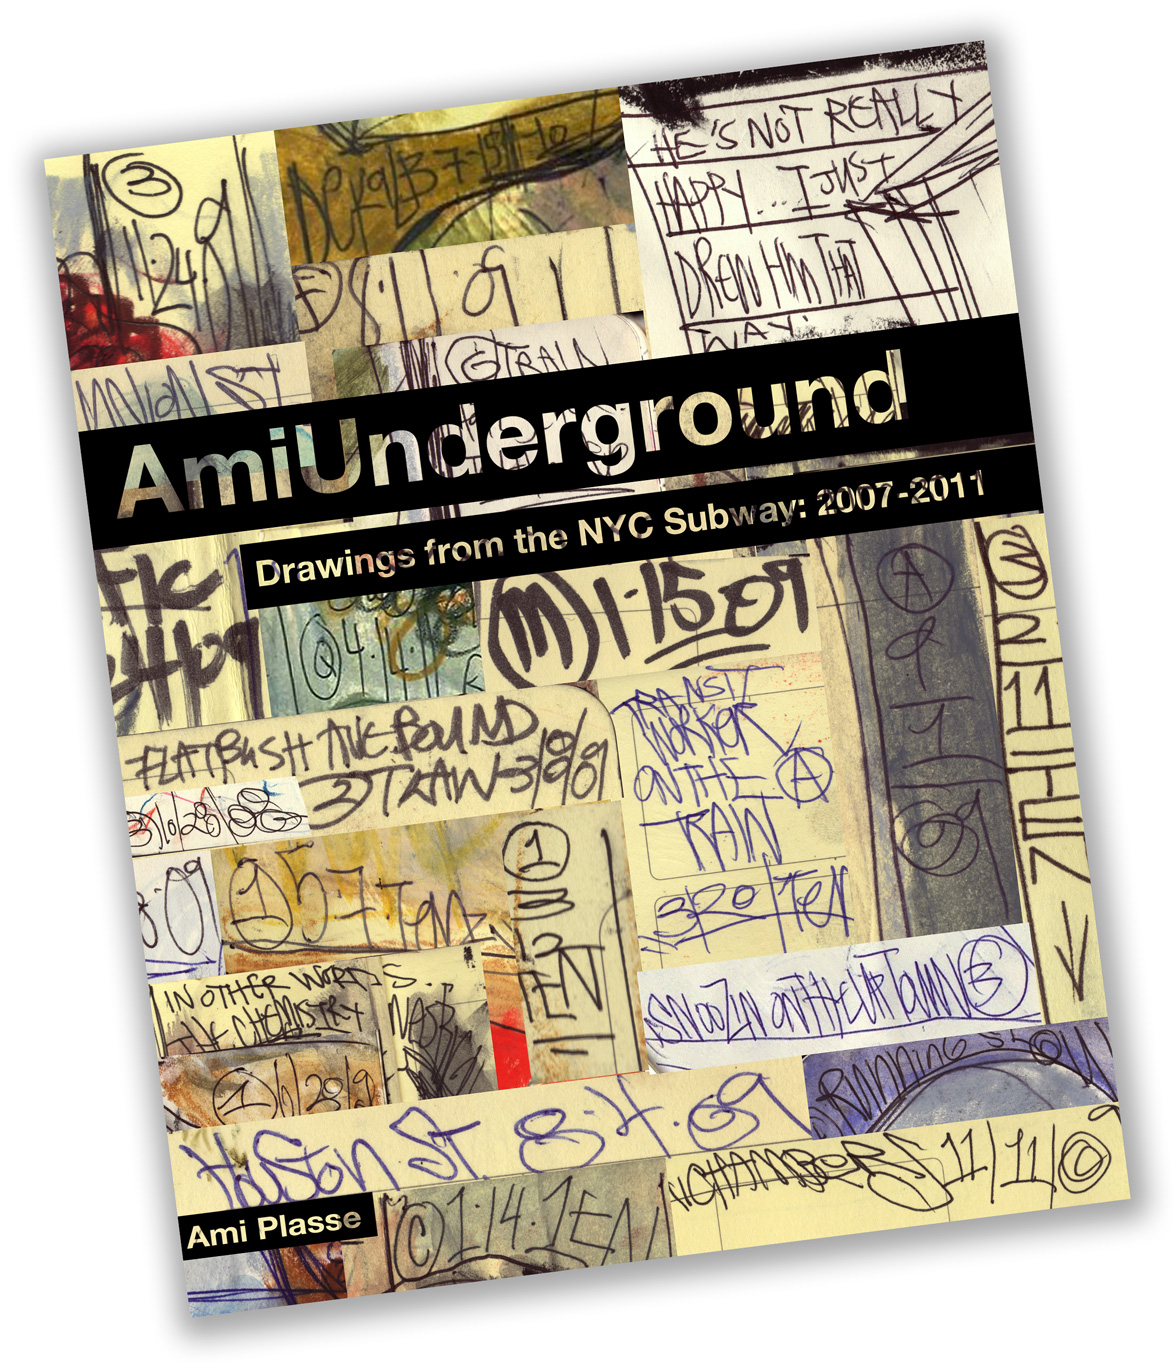 Ami Underground-Drawings from the NYC Subway 2007-2011 . Buy>